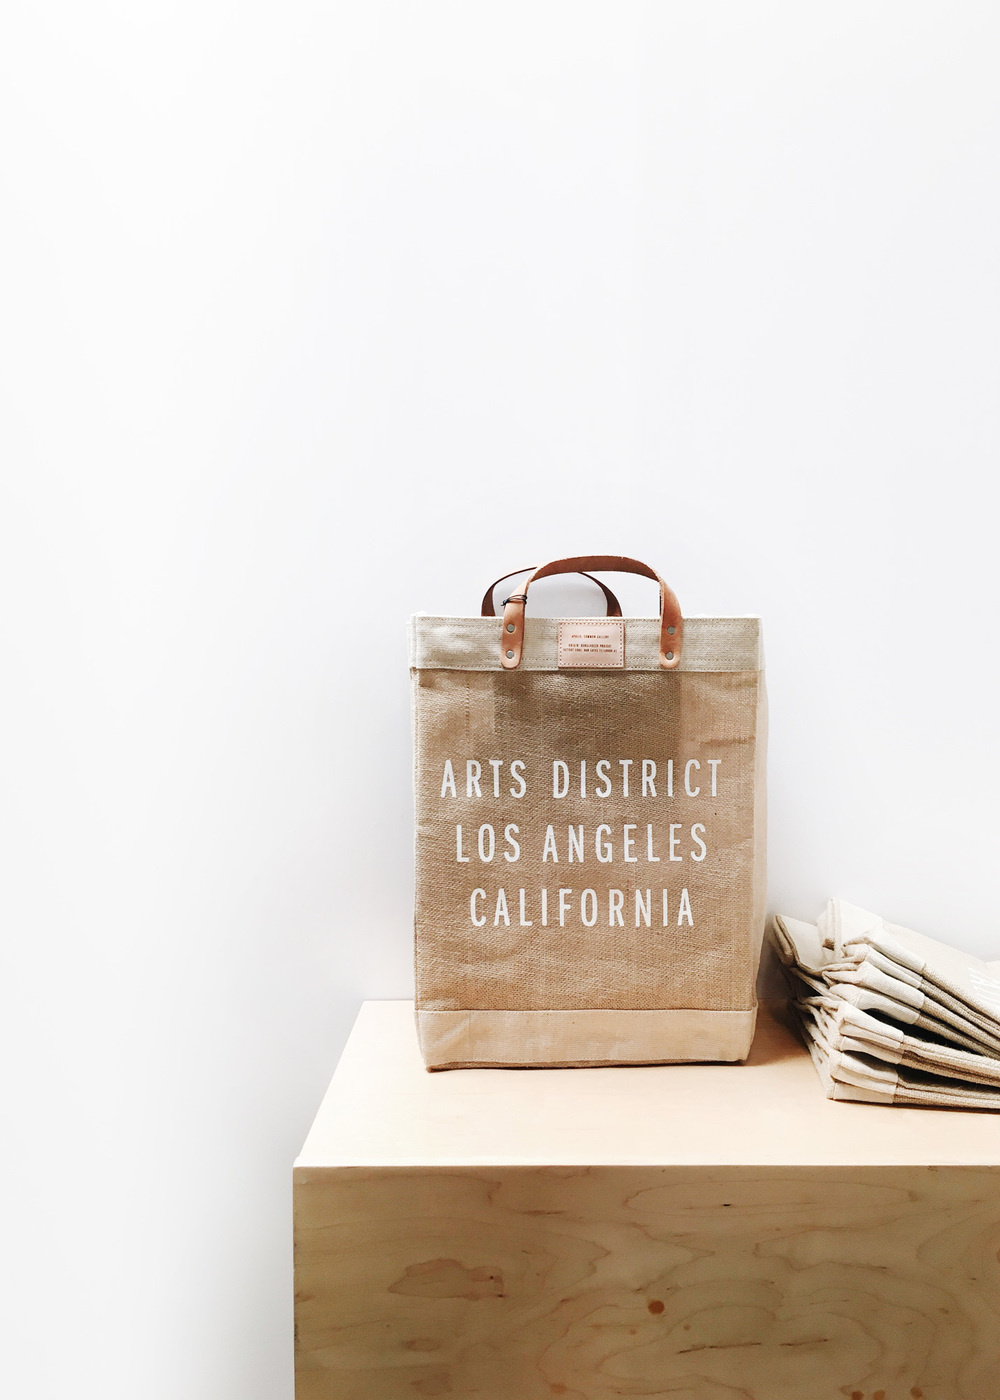 DowntownLosAngeles-ArtsDistrict-Apolis1